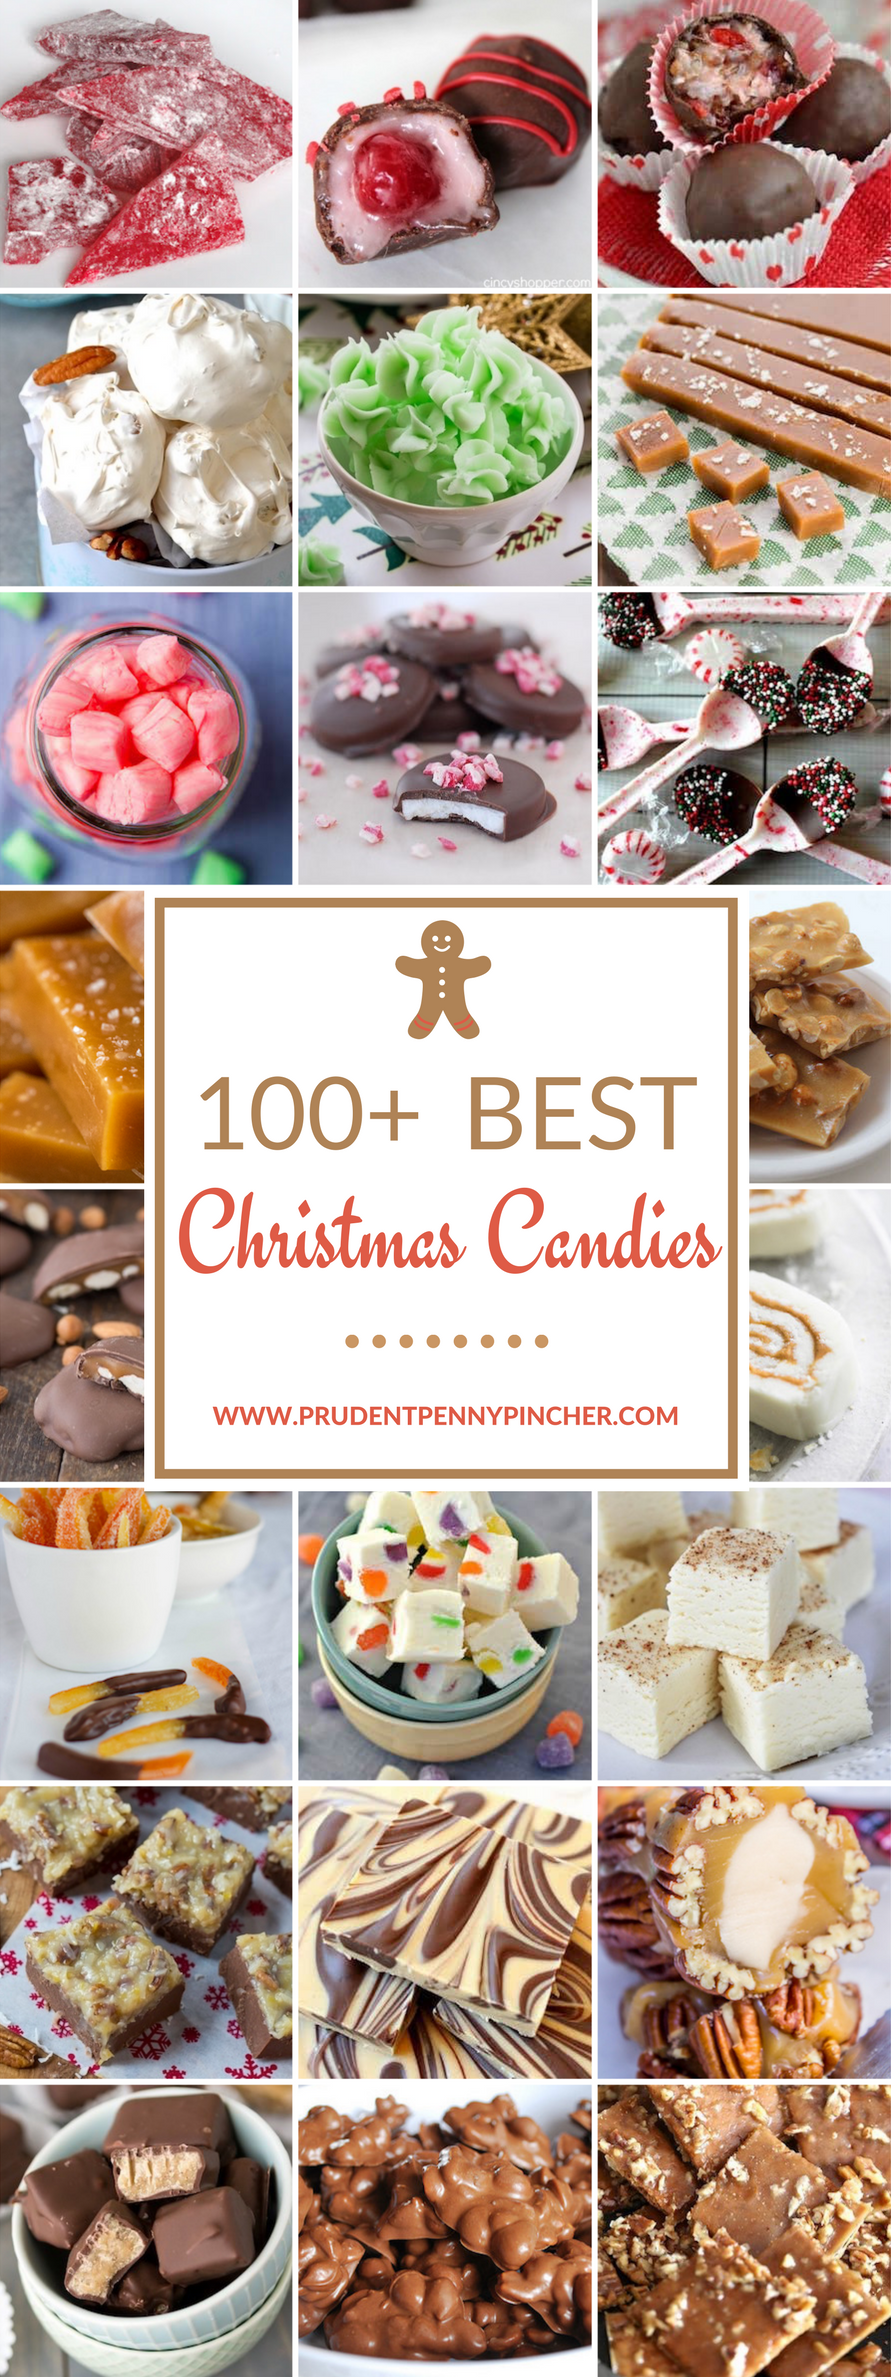 100 best christmas candy recipes - Best Christmas Candy Recipes